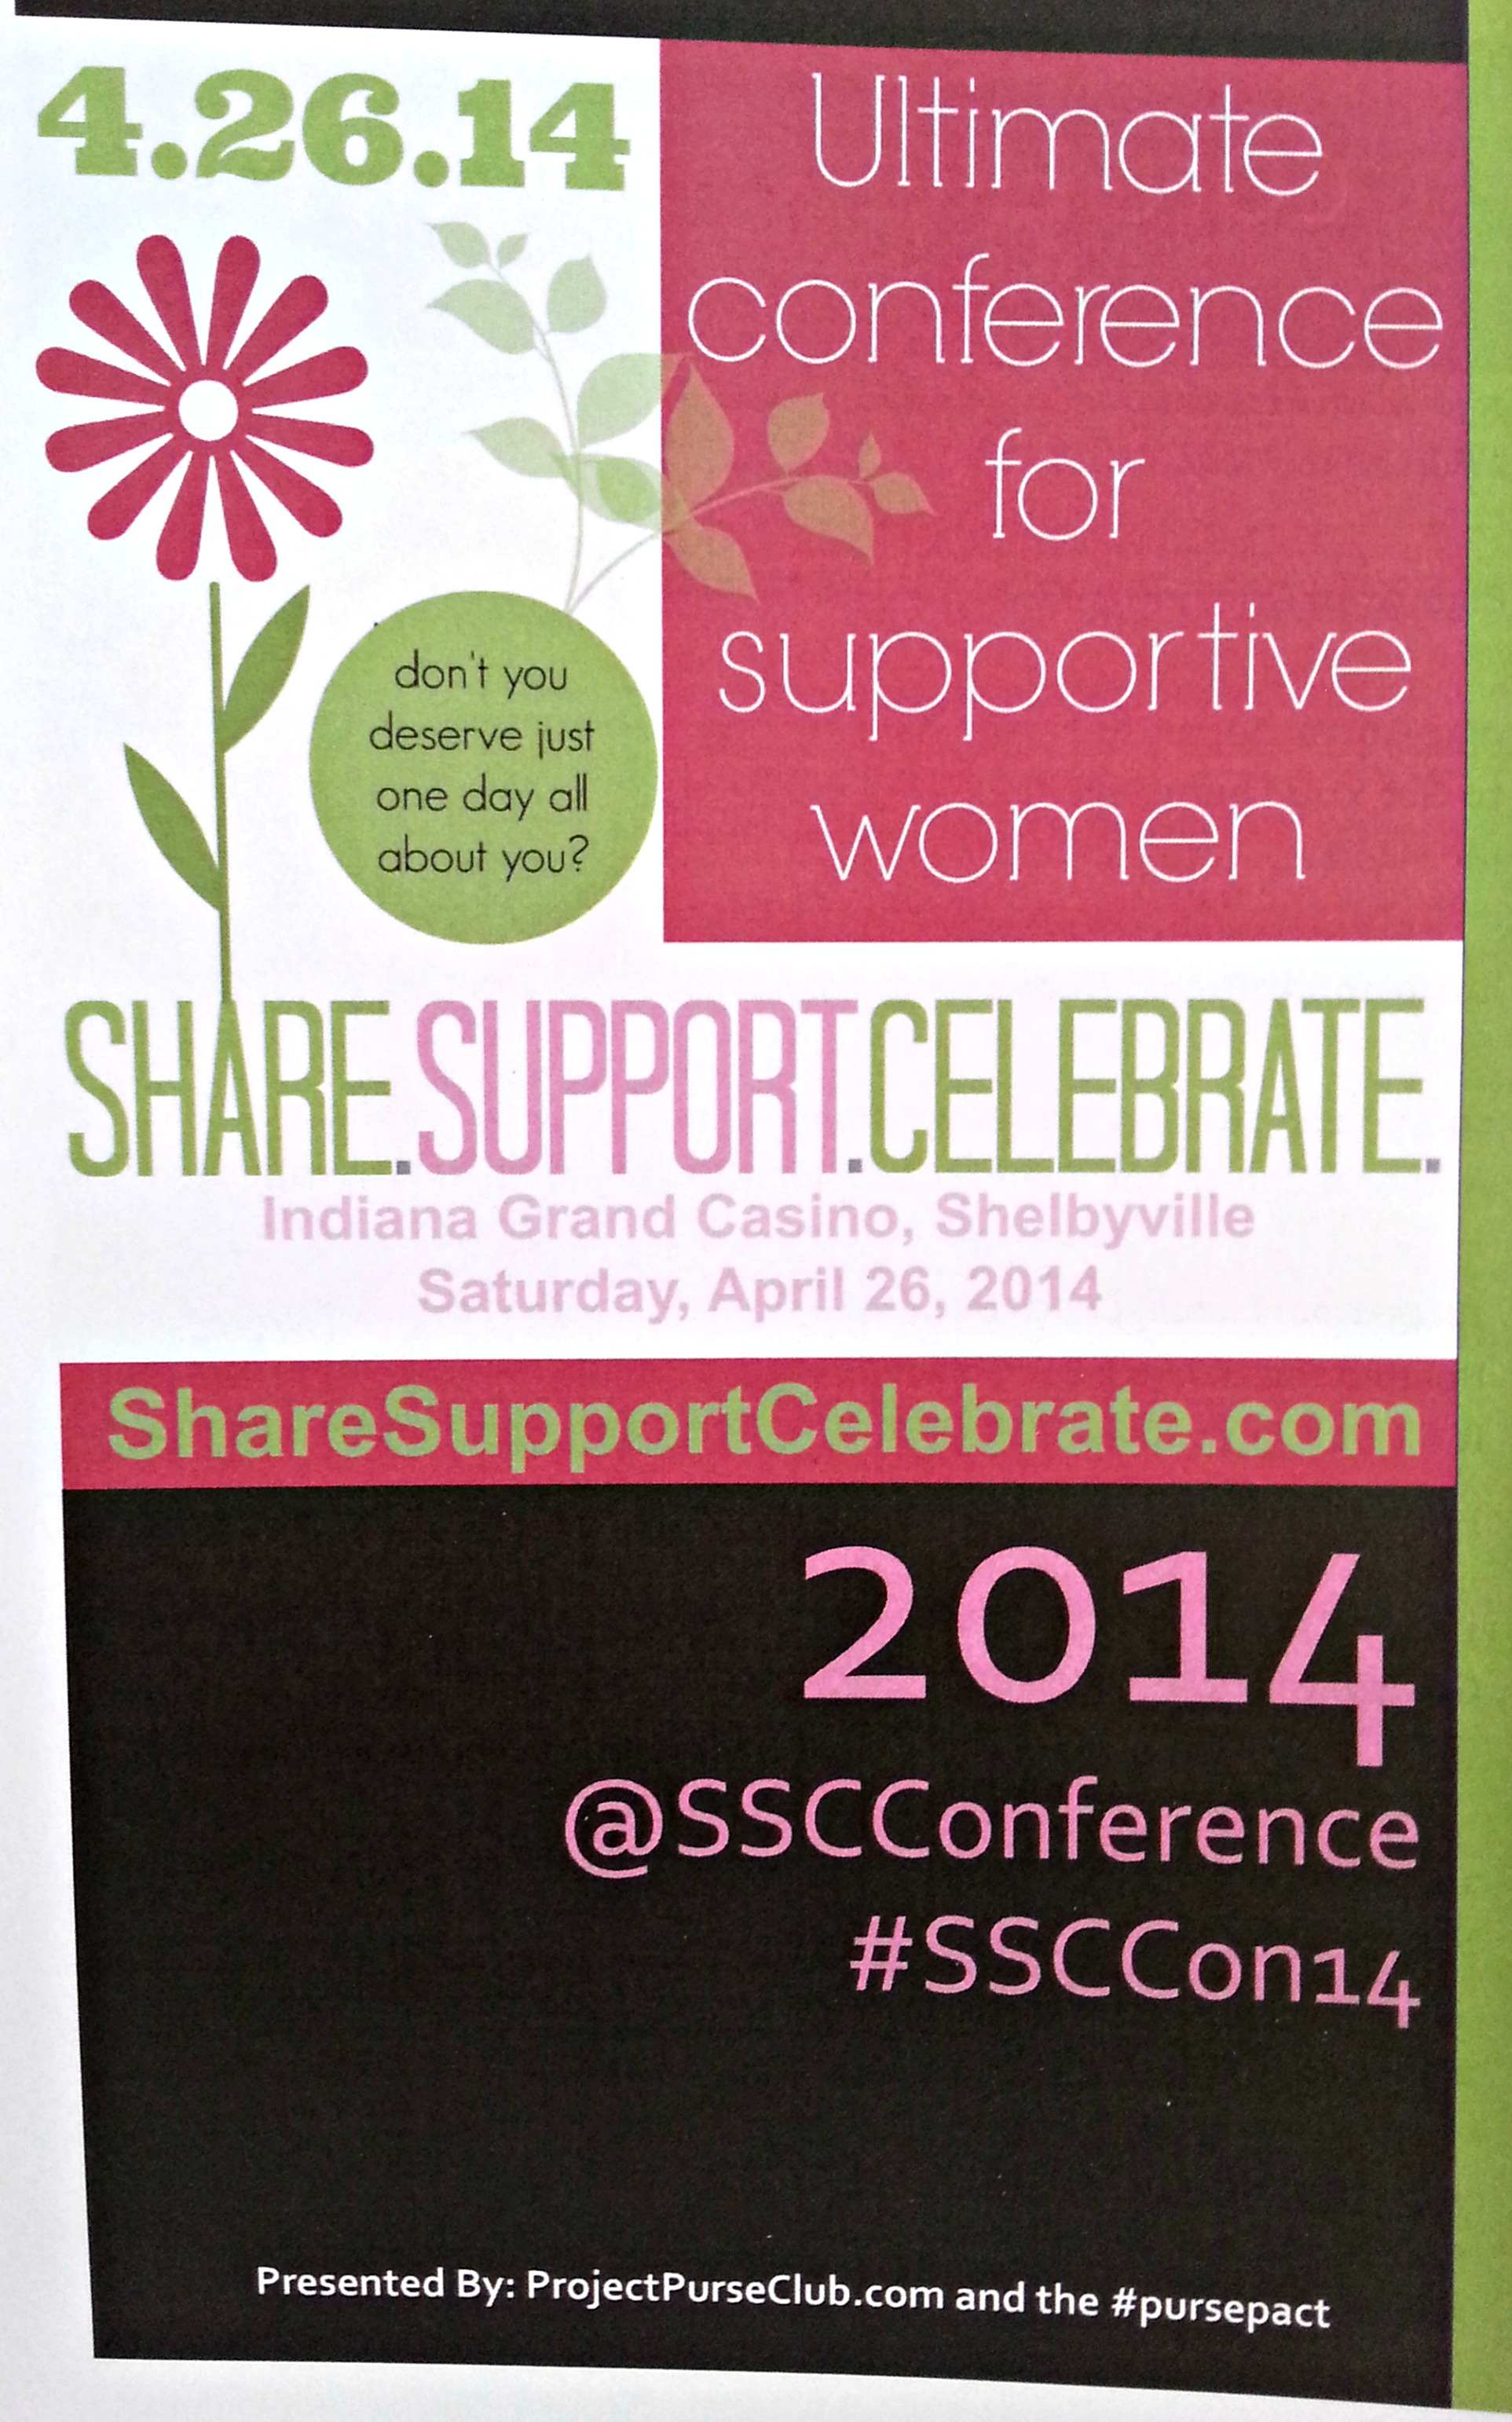 Share.Support.Celebrate Conference